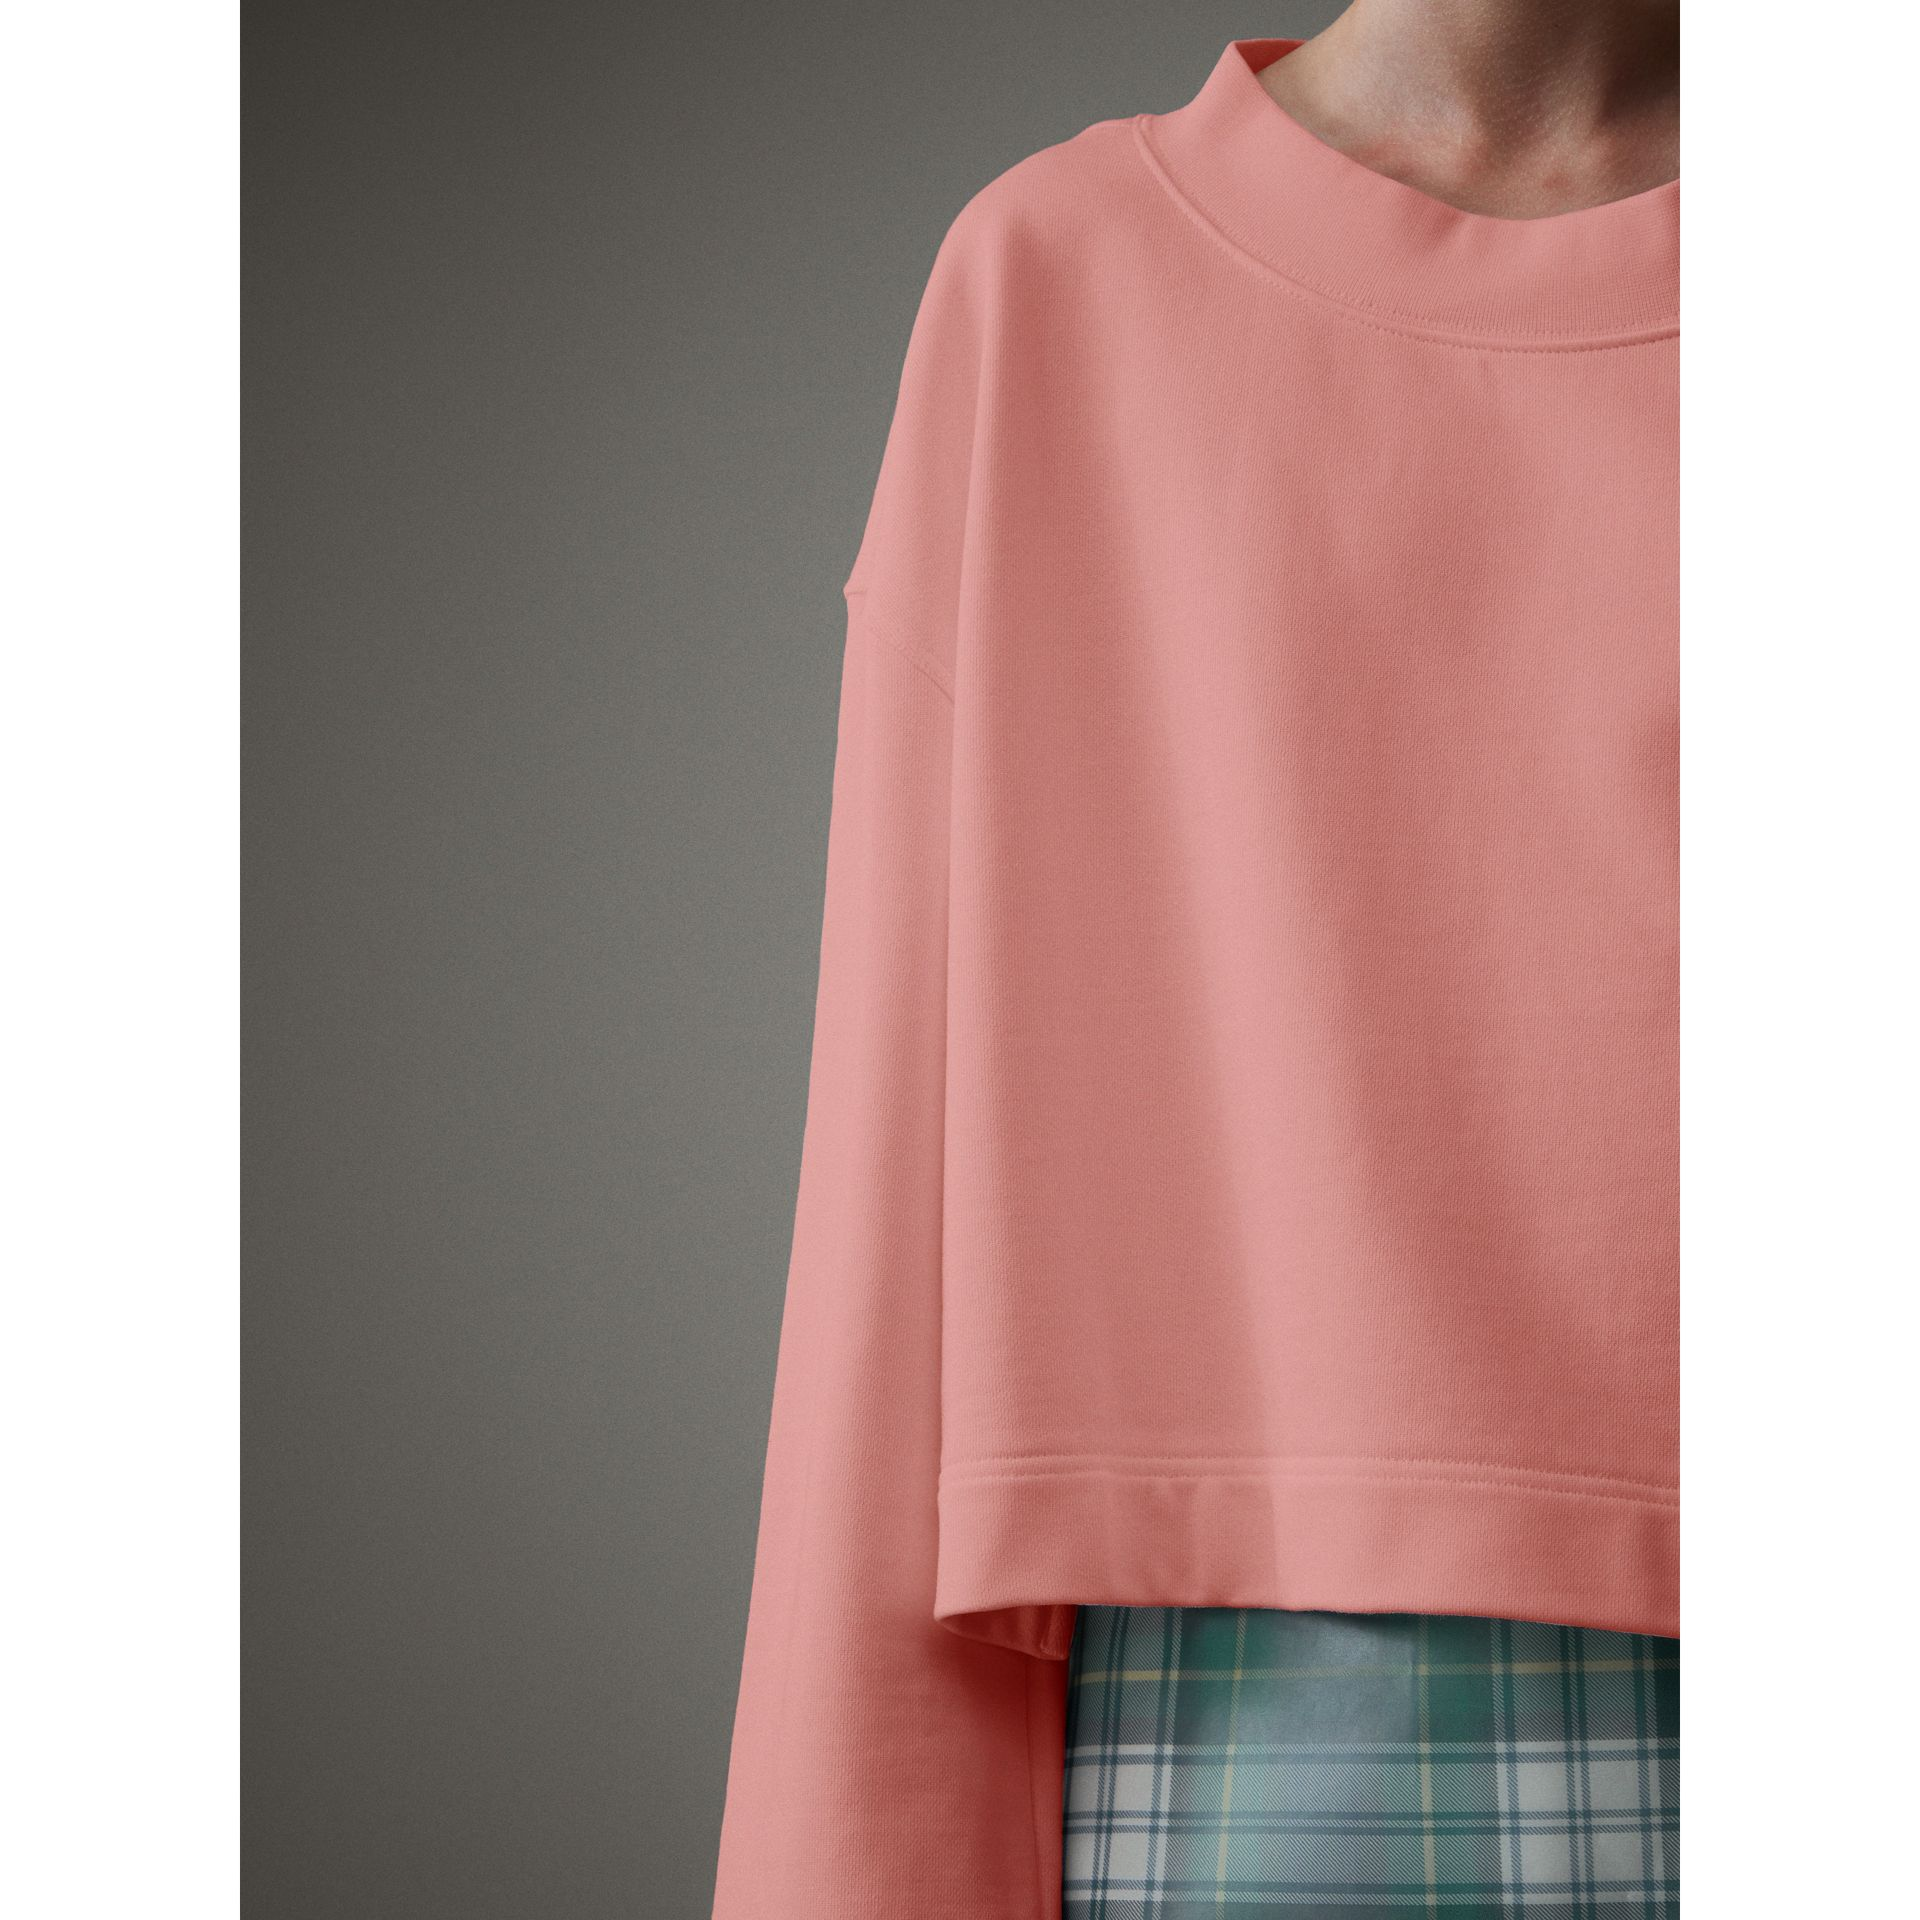 Sweat-shirt court avec broche en cristal (Rose Vintage) - Femme | Burberry - photo de la galerie 1